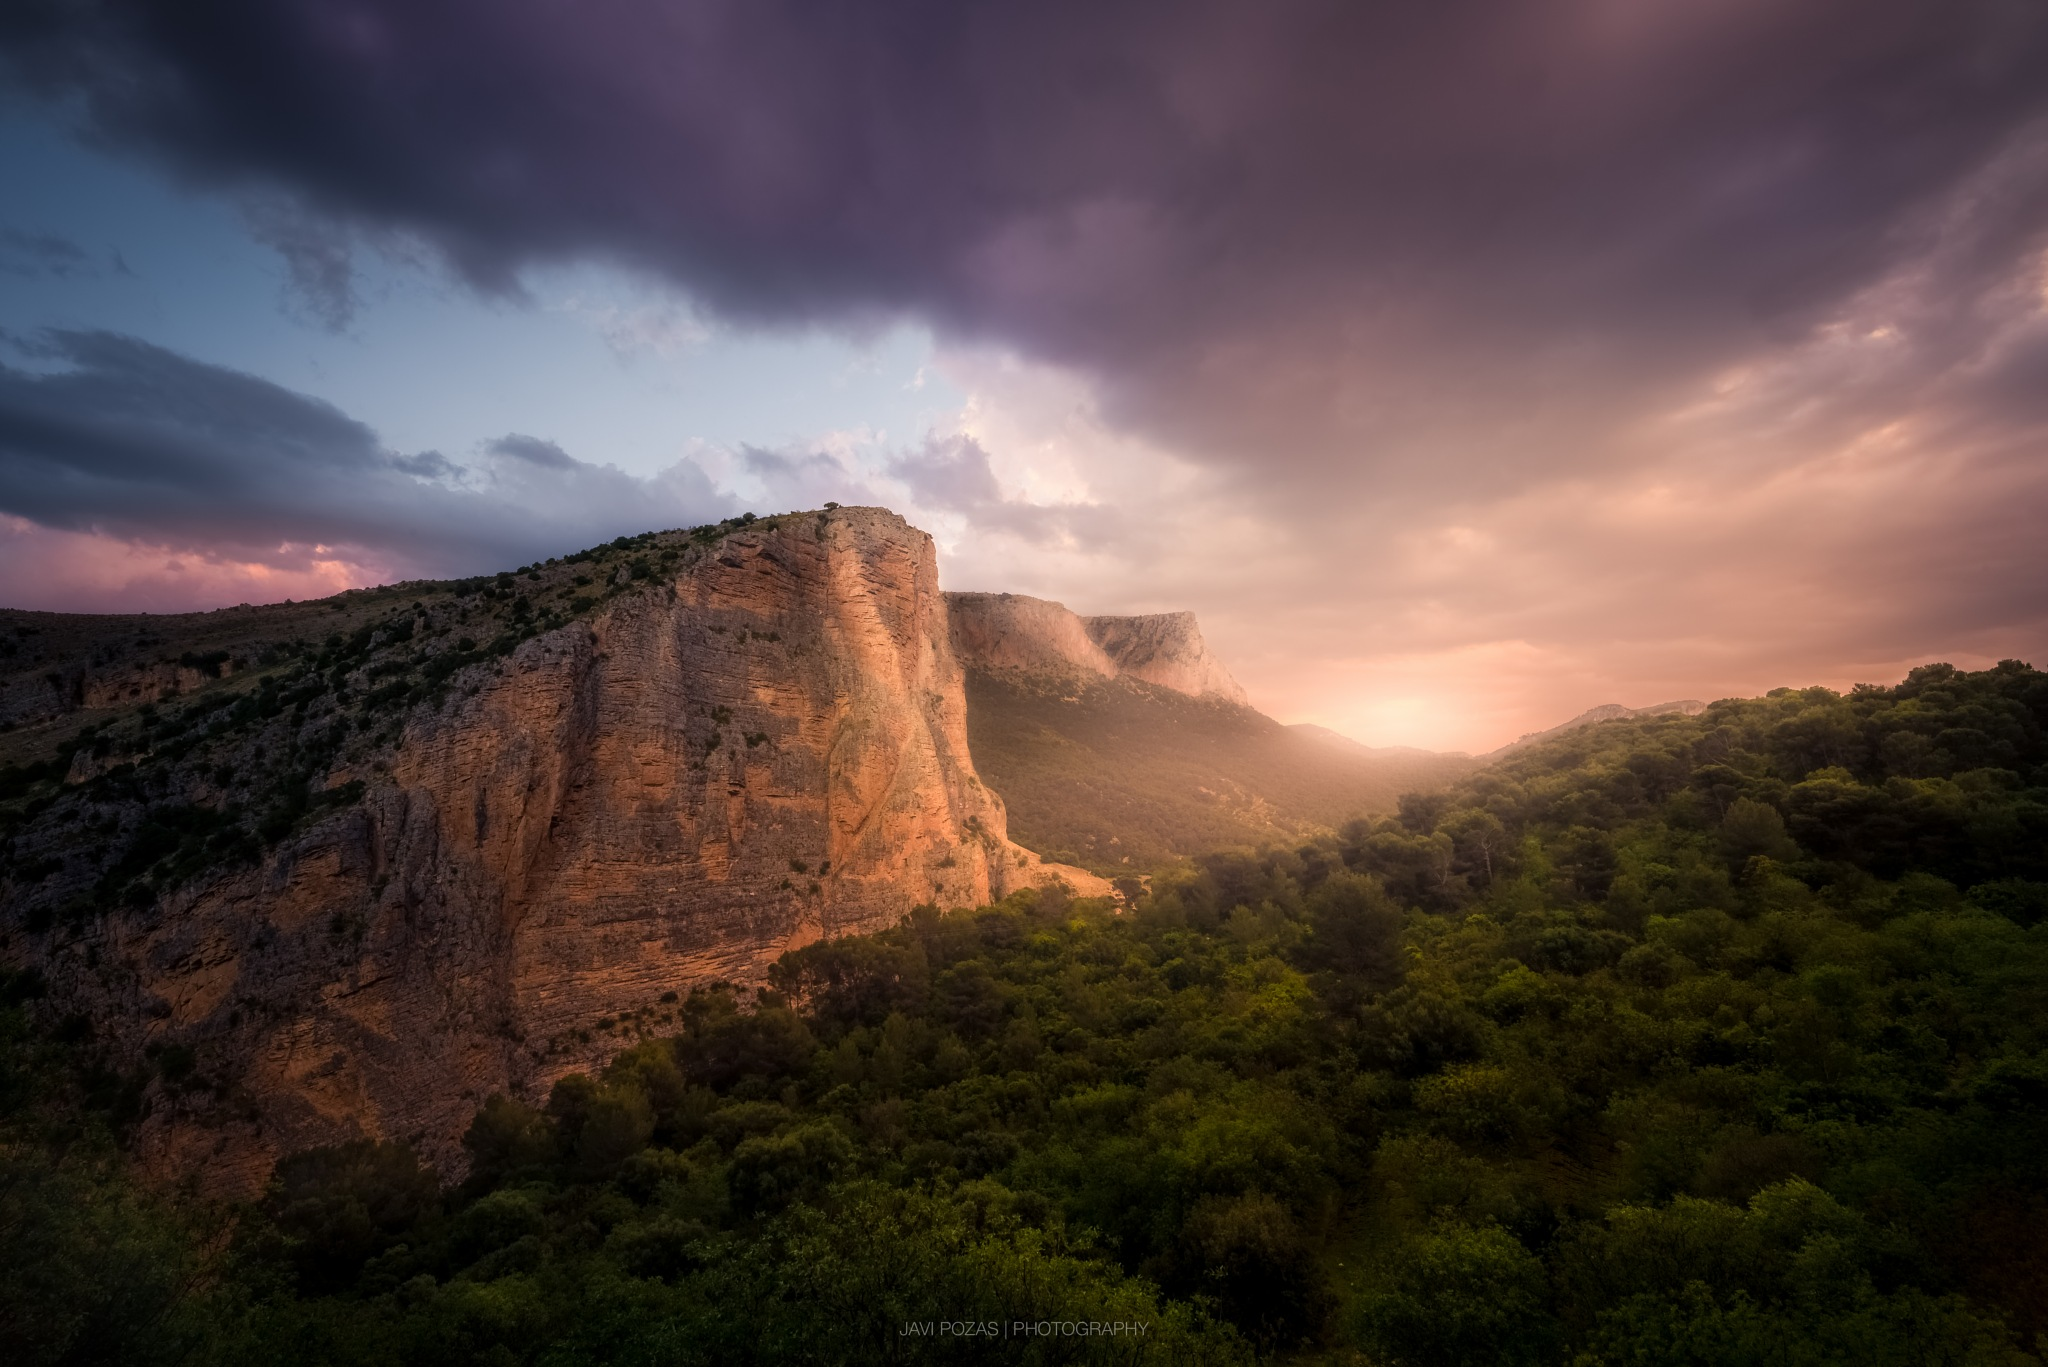 Calm before the storm by Javi Pozas